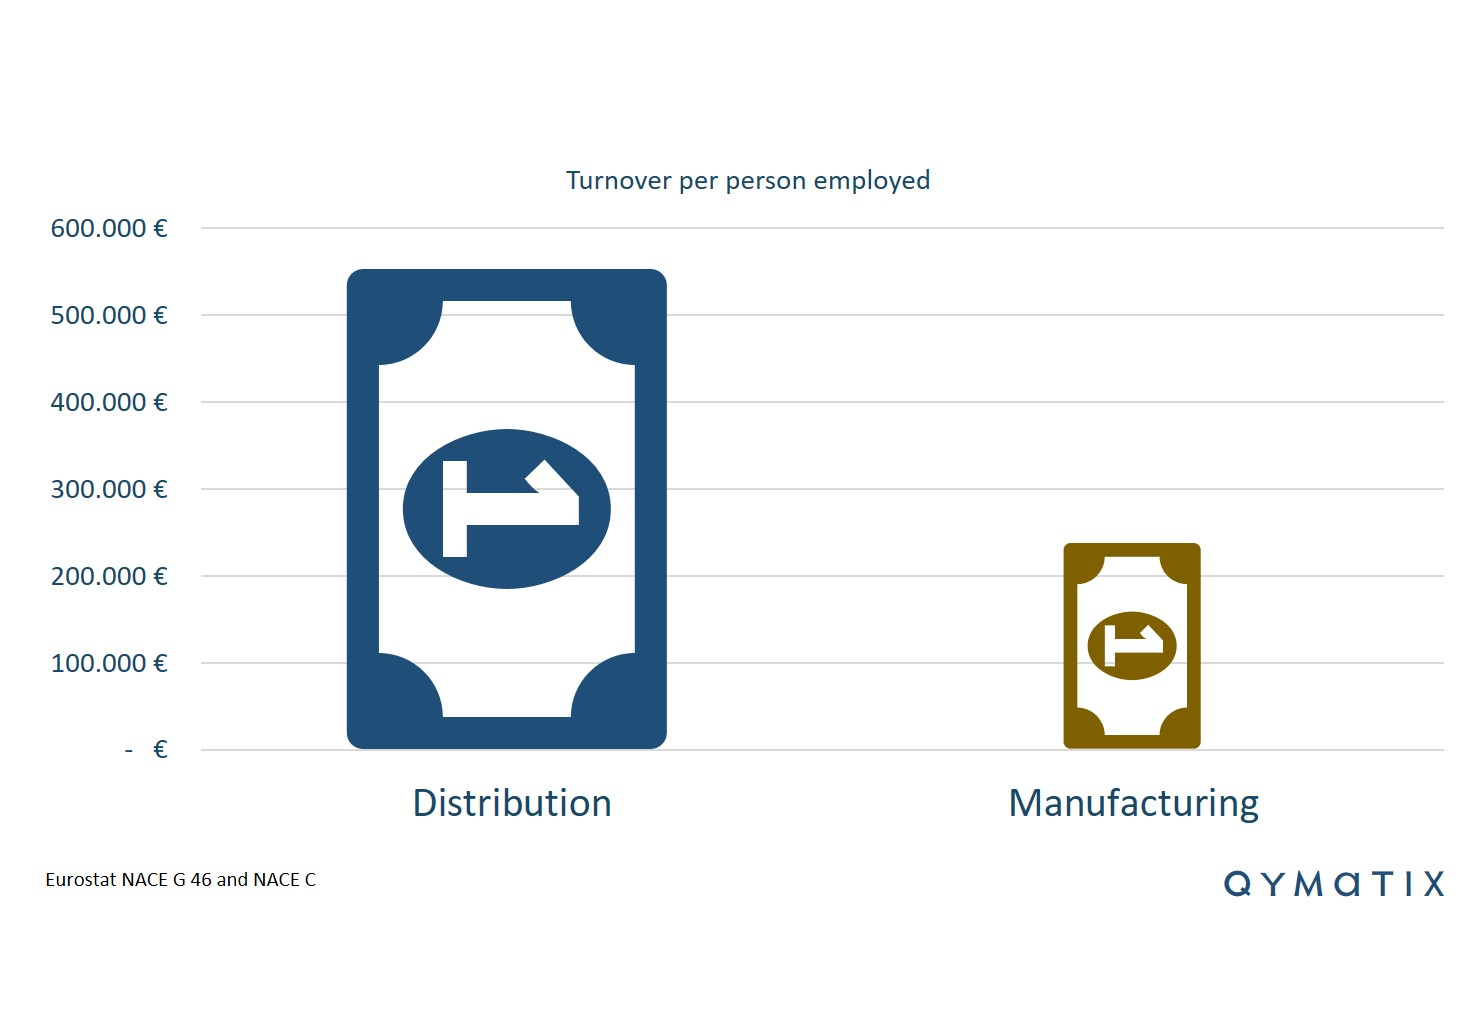 turnover-per-person-employed-distribution-manufacturing